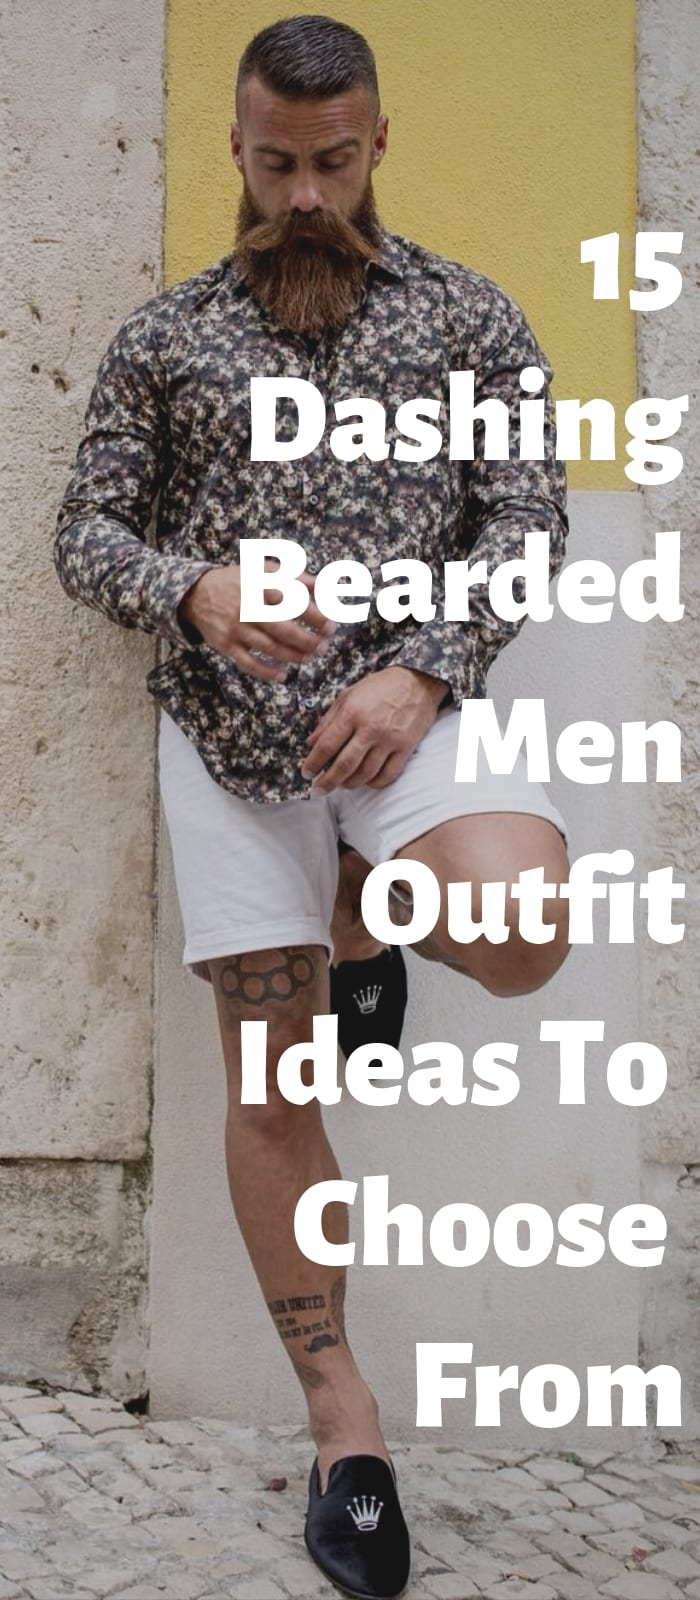 15 Dashing Bearded Men Outfit Ideas To Choose From